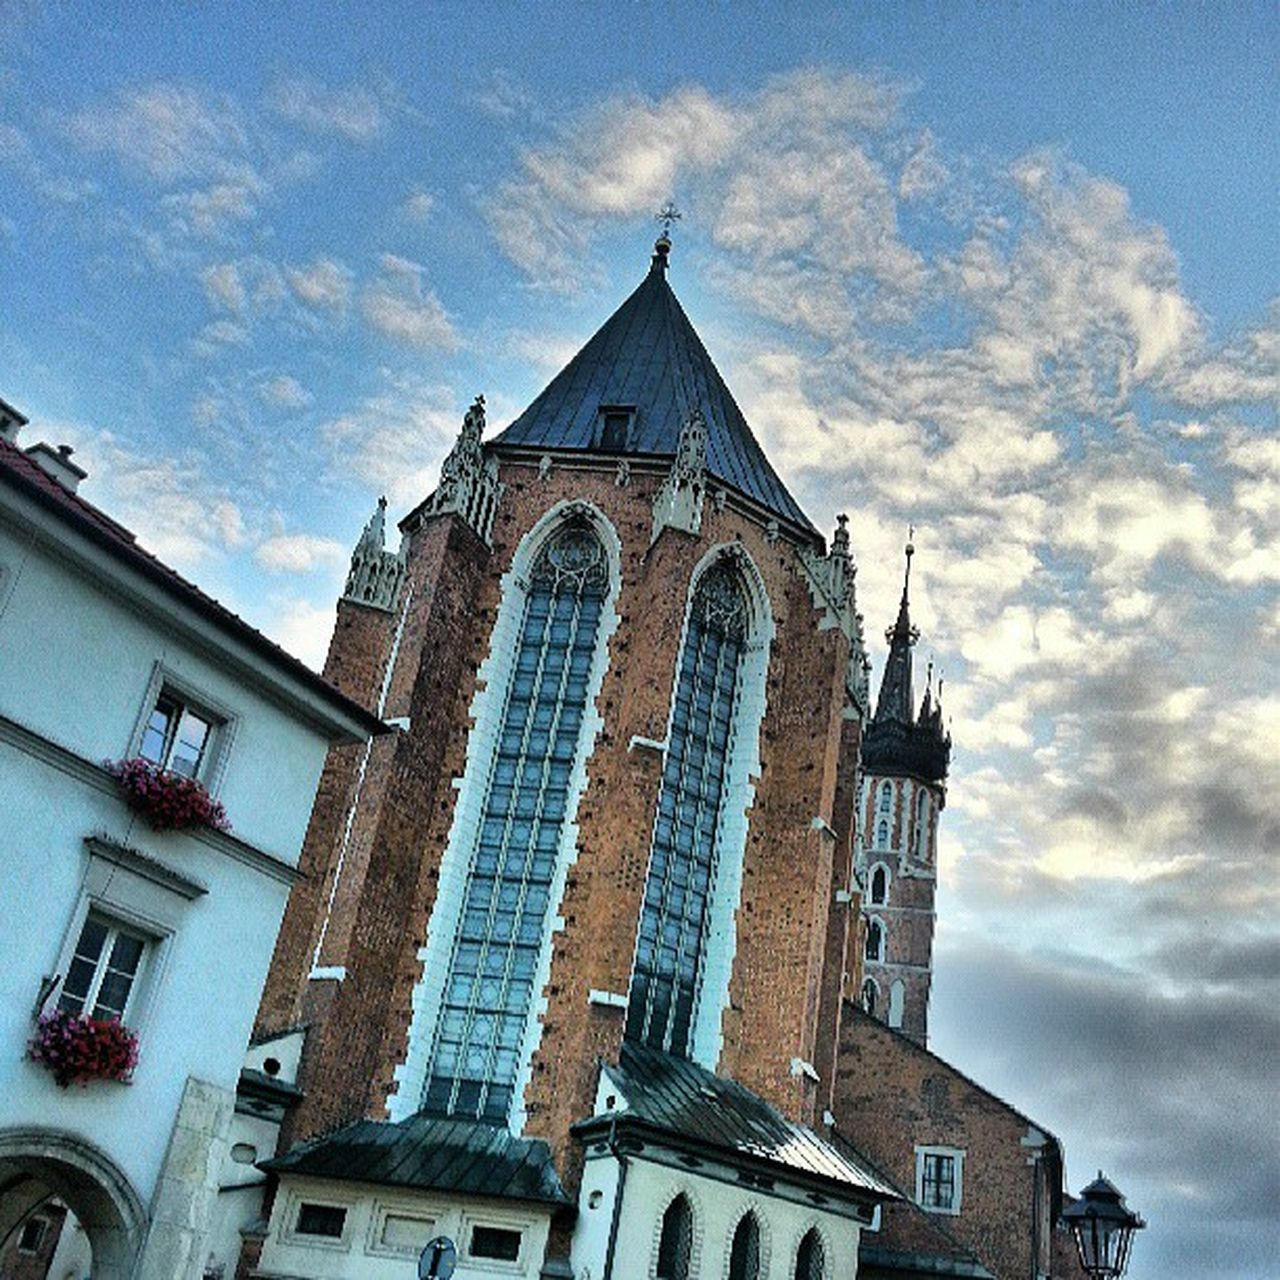 LOW ANGLE VIEW OF CHURCH AGAINST THE SKY